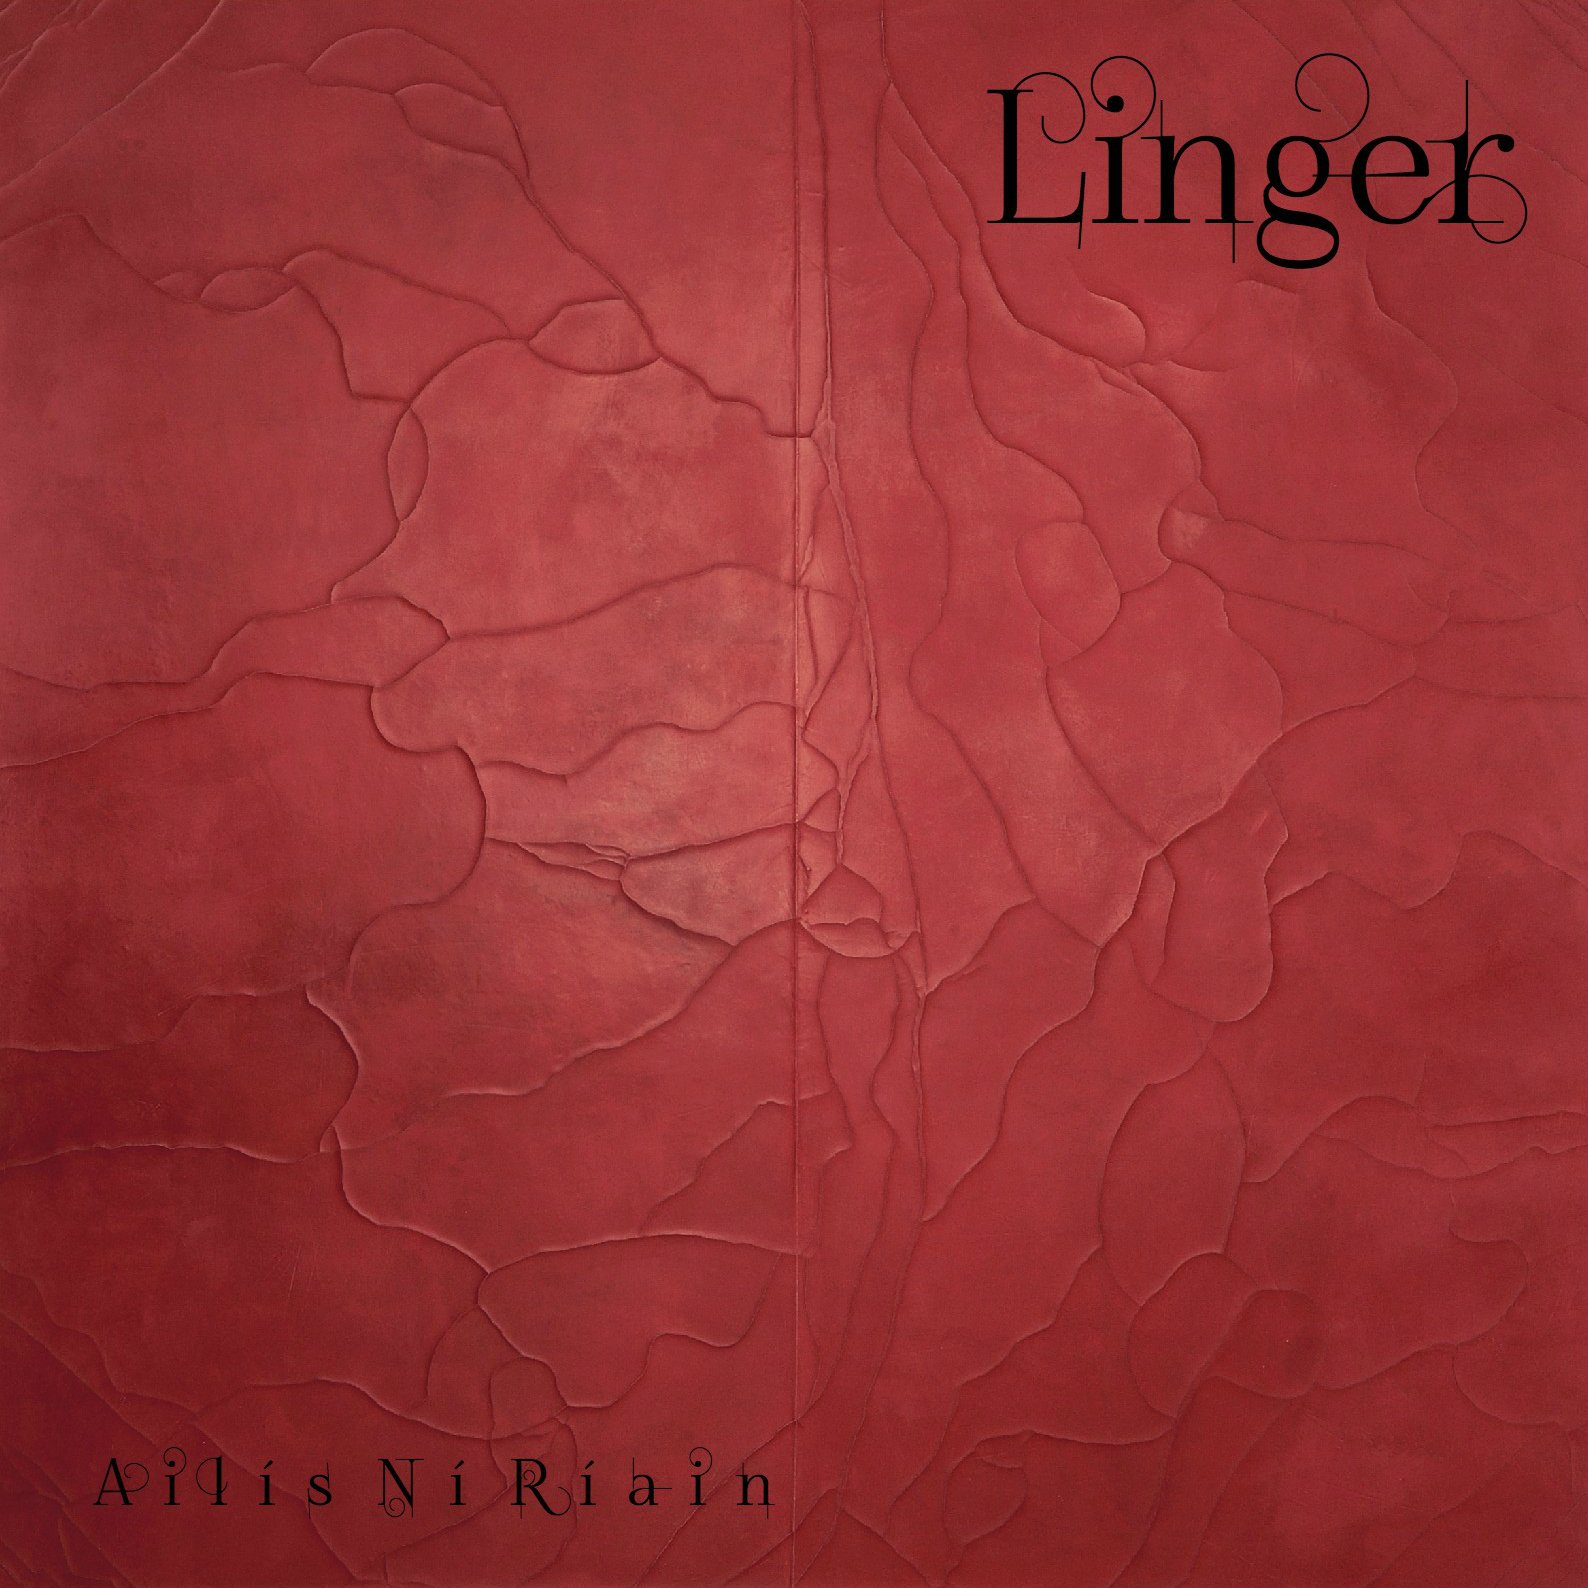 CD cover for Linger